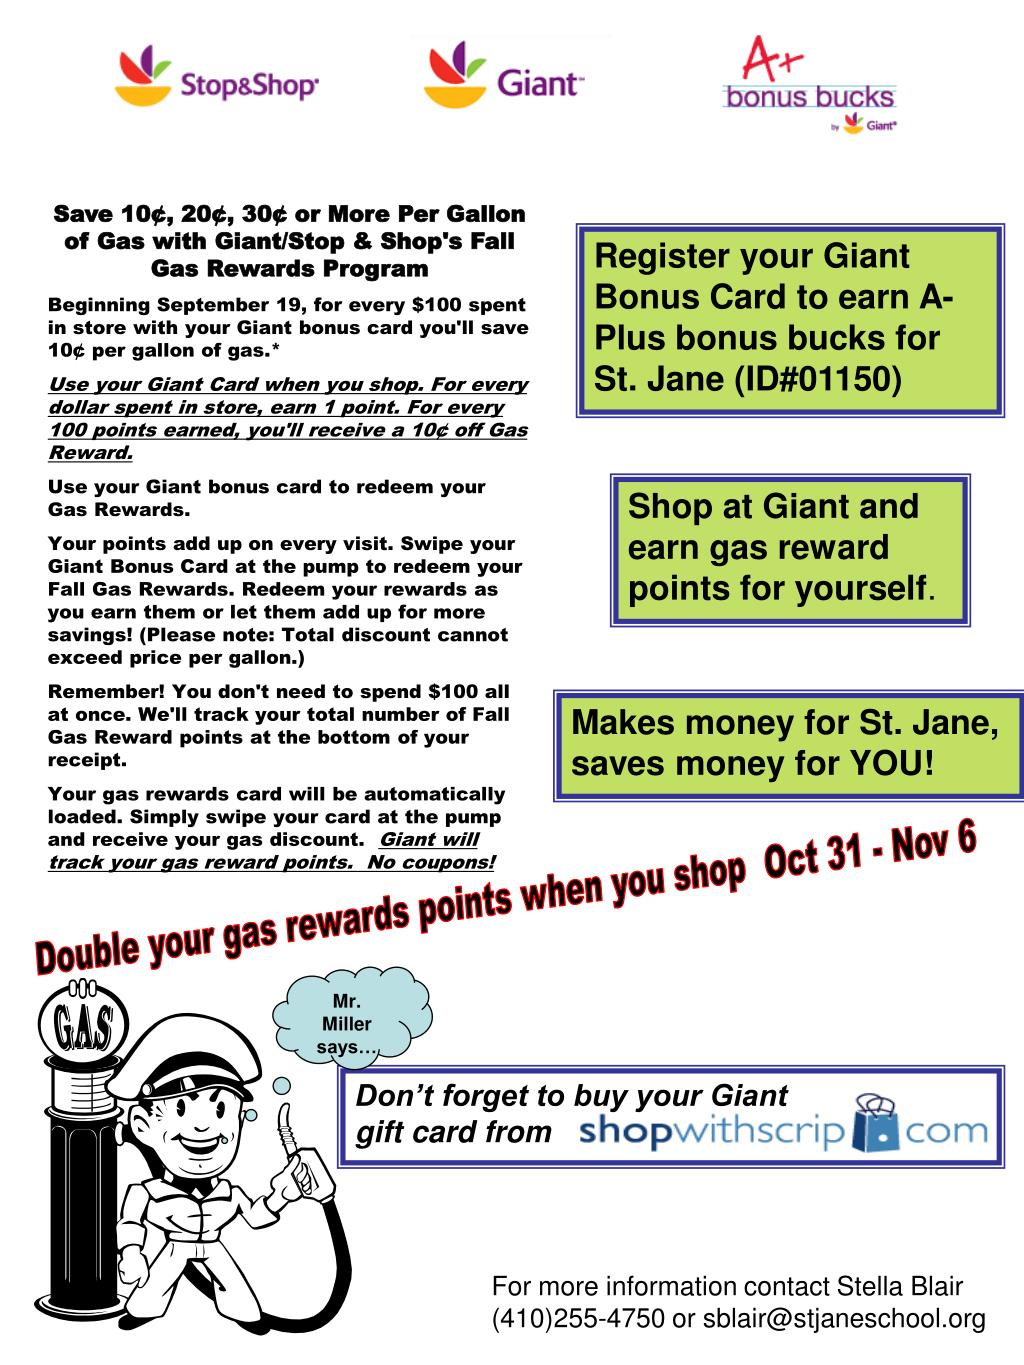 Save 10¢, 20¢, 30¢ or More Per Gallon of Gas with Giant/Stop & Shop's Fall Gas Rewards Program